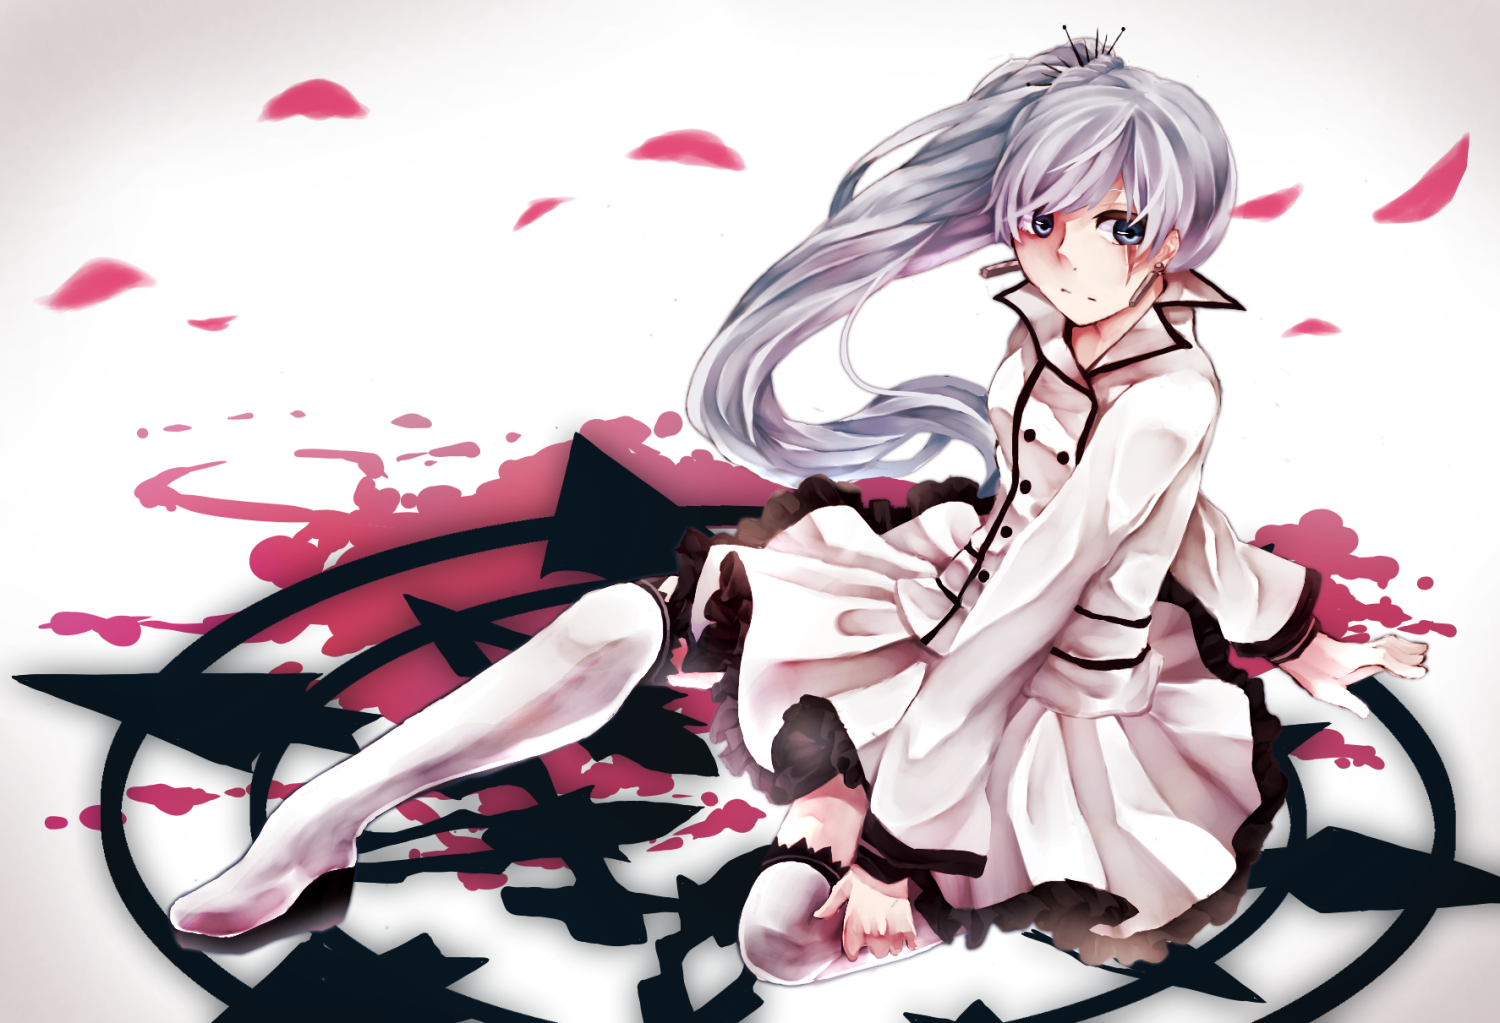 Anime Rwby Weiss Schnee Schnee Snowpea Outfit Rwby Wallpaper Rwby Rwby Anime Rwby Wallpaper